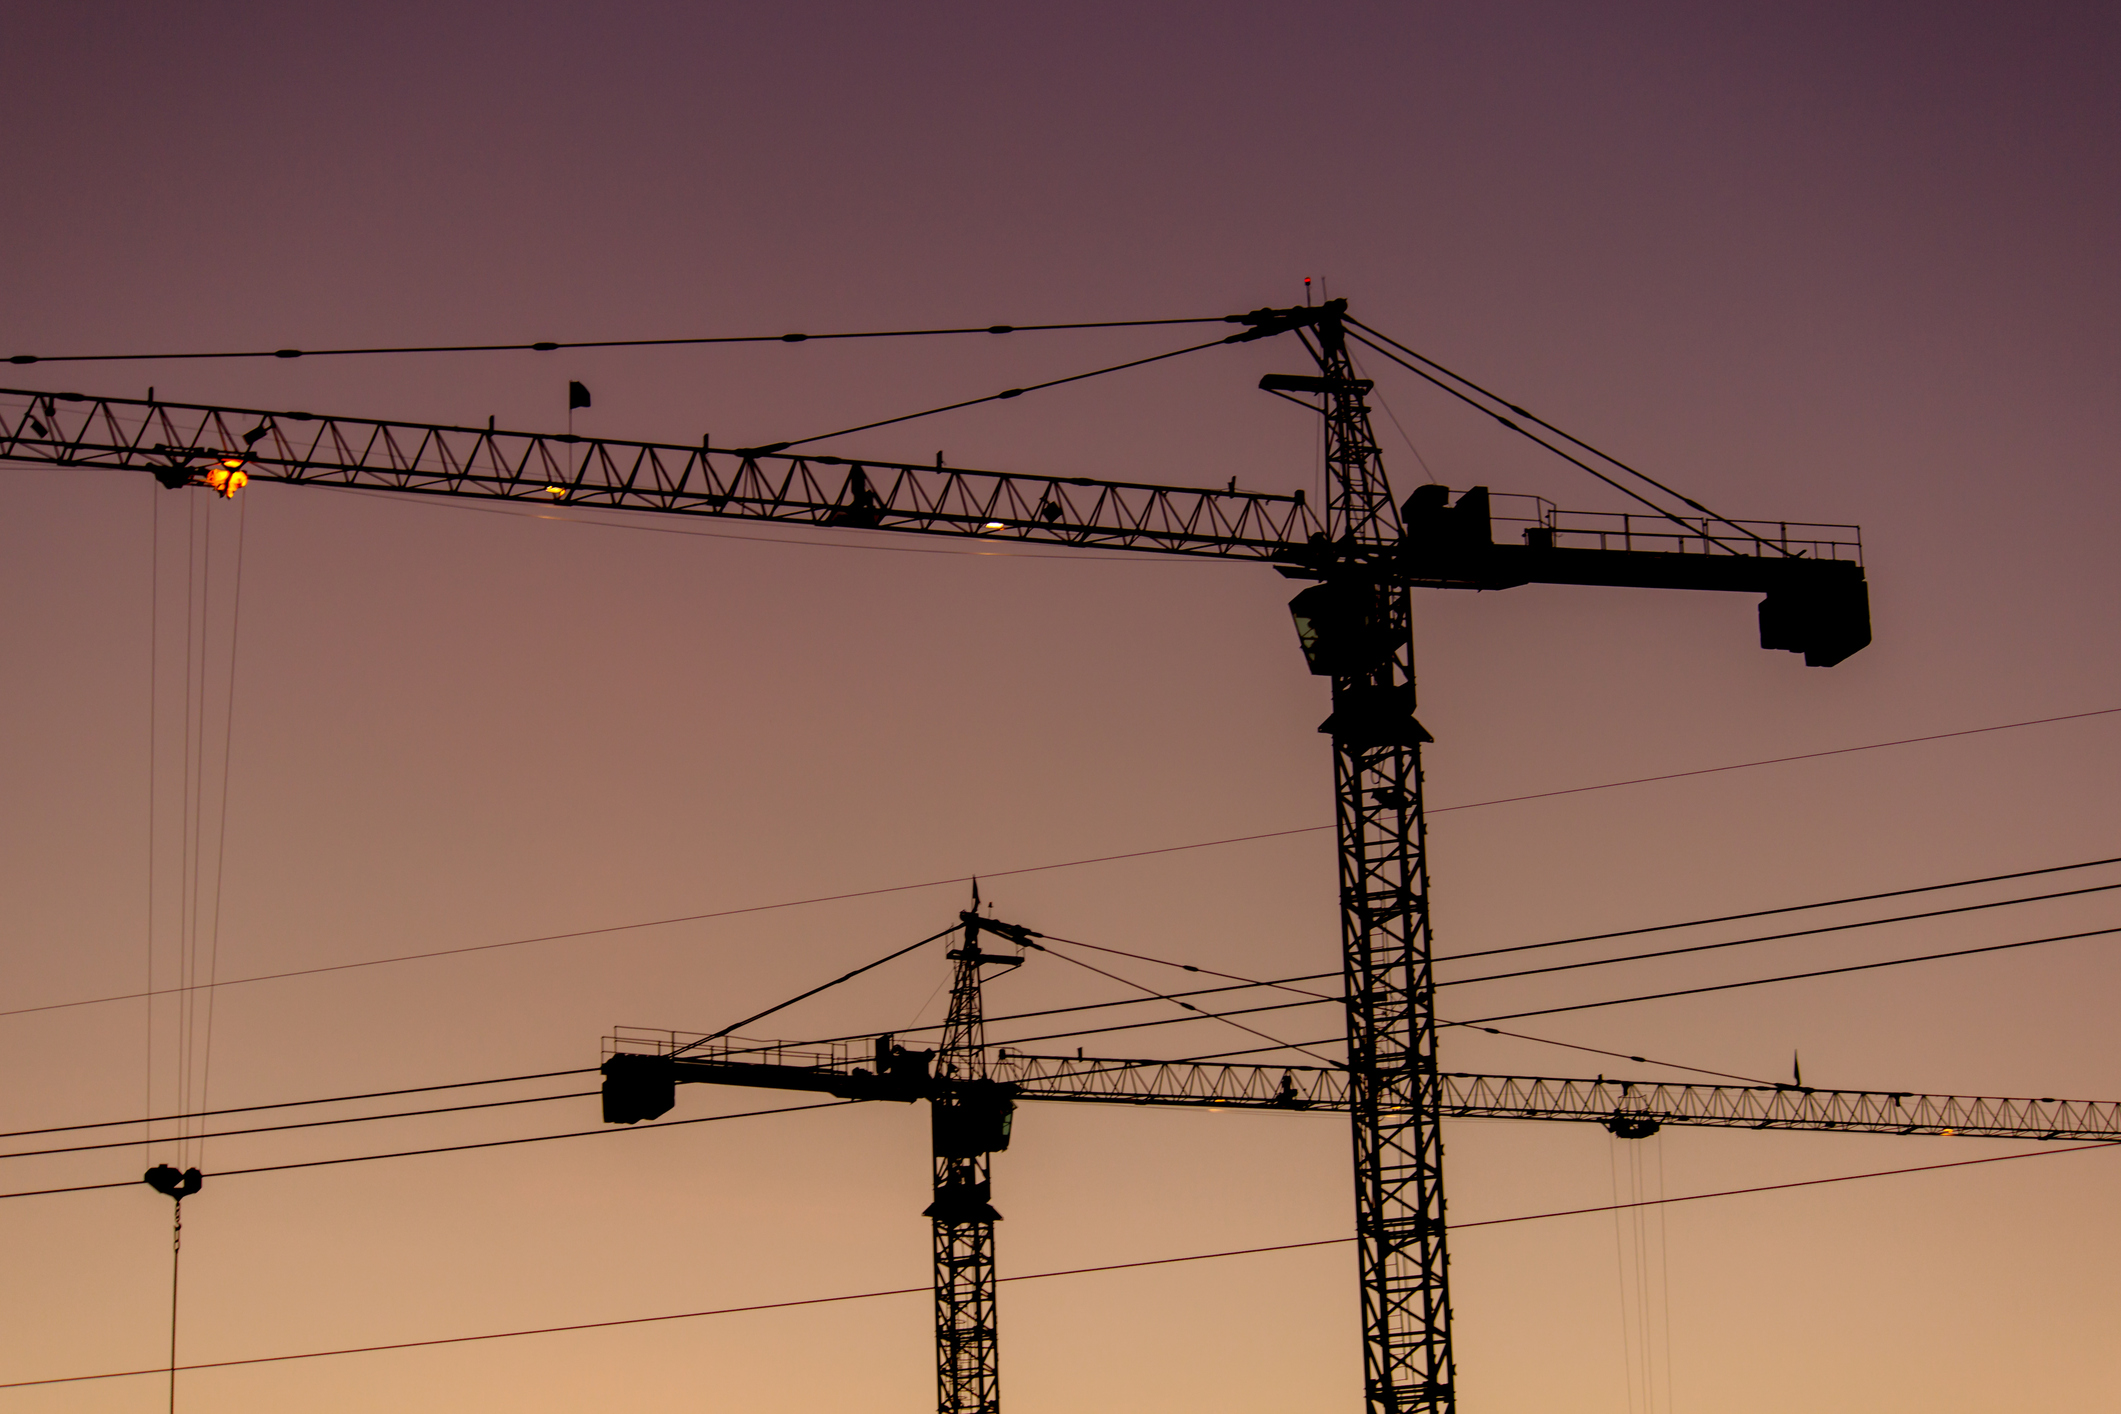 Two construction cranes parallel to each other